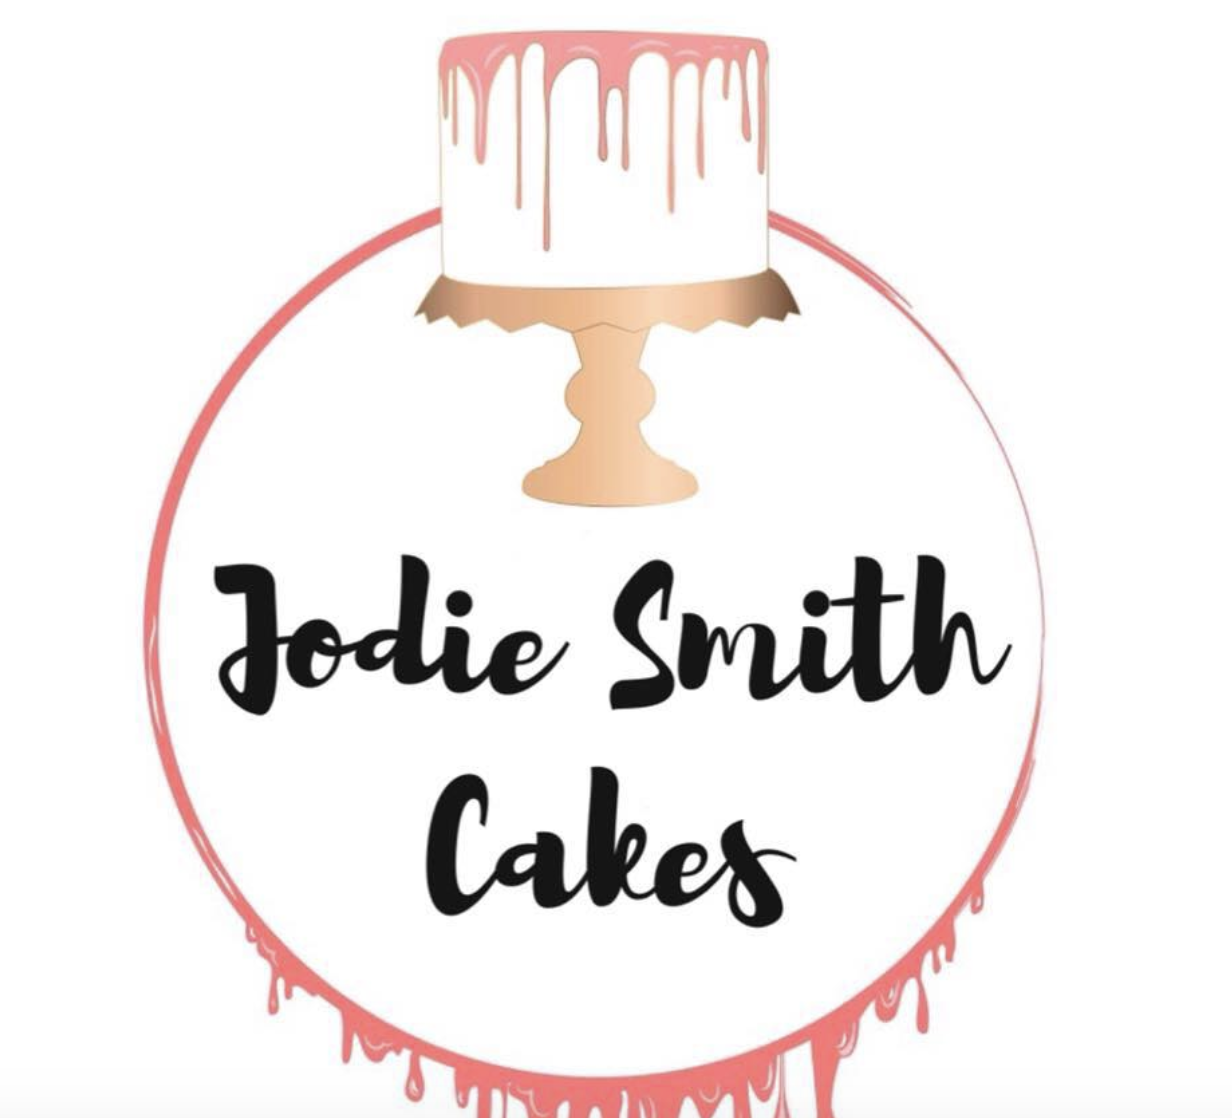 Jodie Smith Cakes